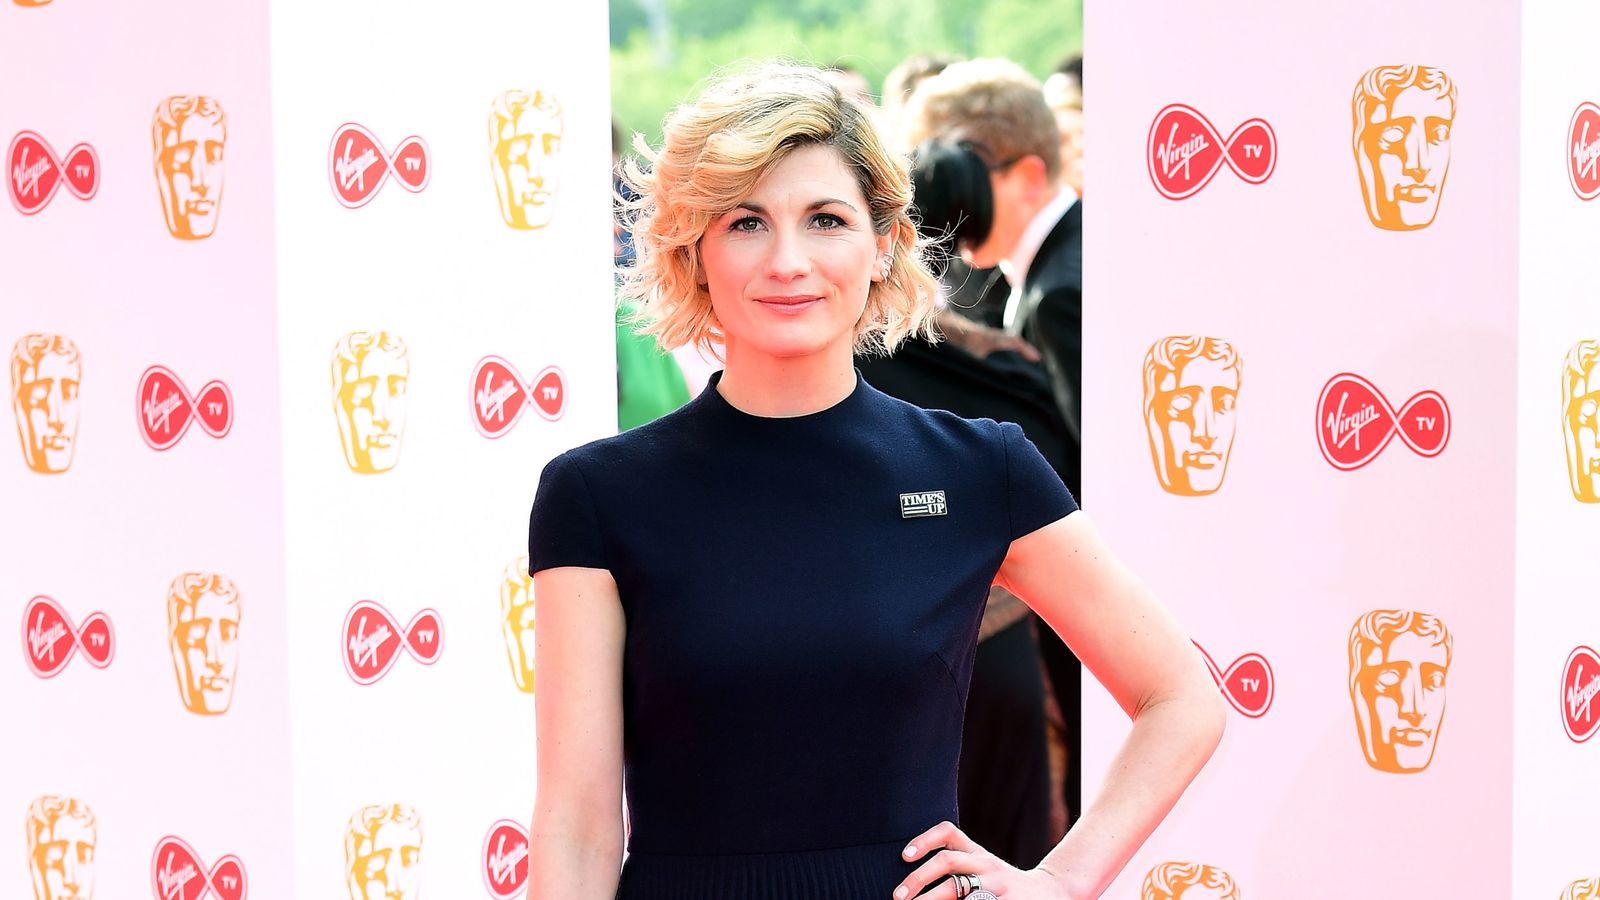 Baftas: BAFTA Stars 'passionately' Back Time's Up Campaign